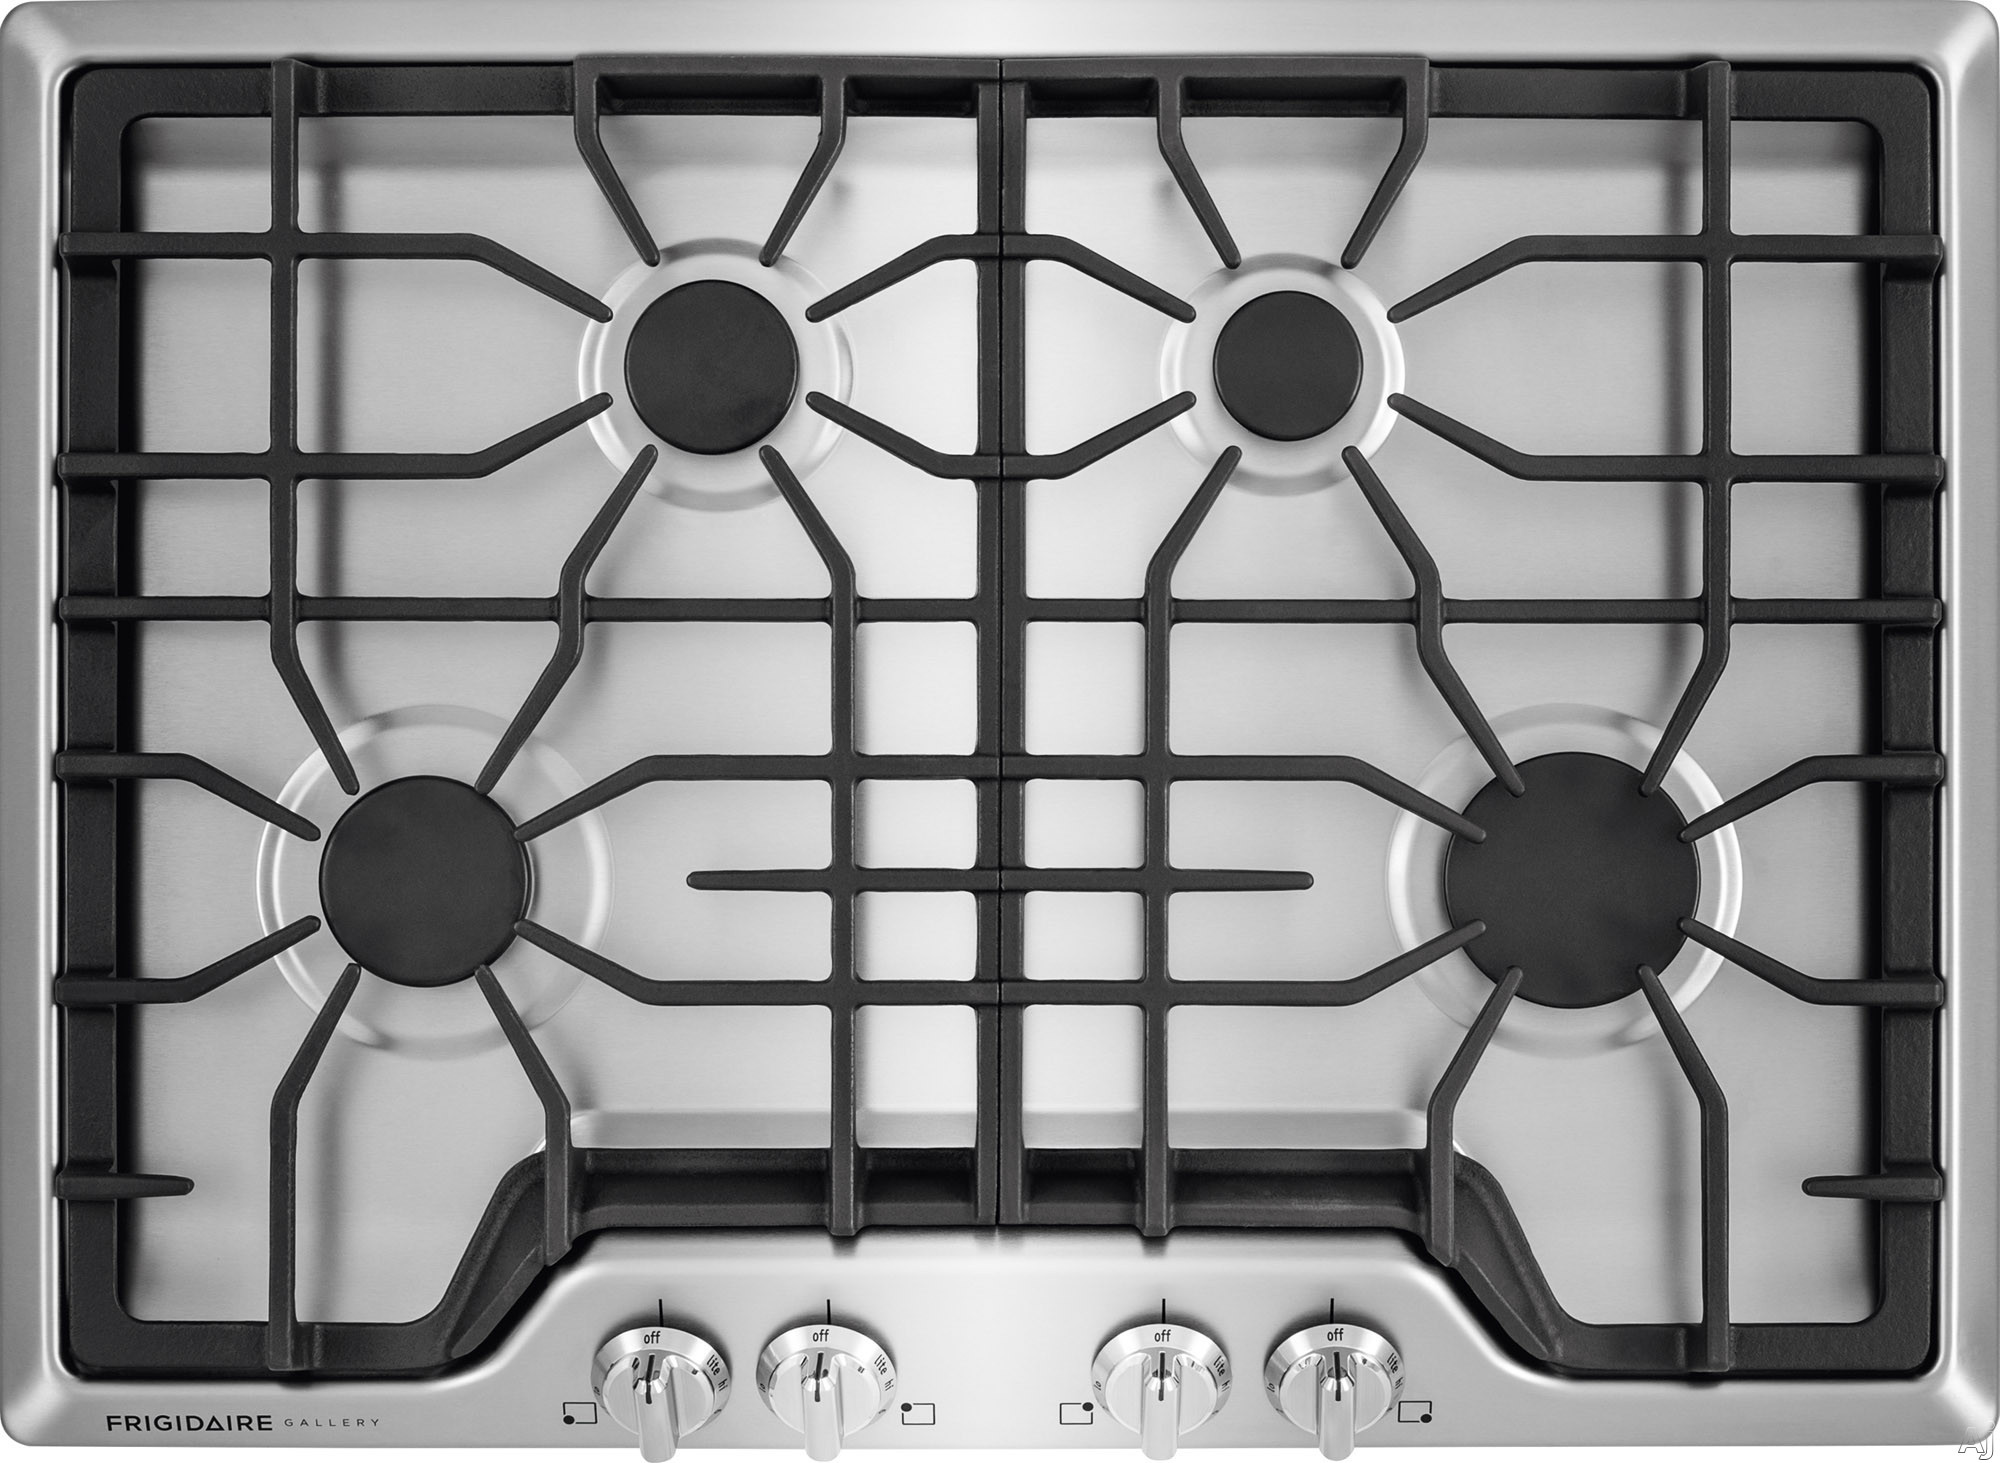 Frigidaire Gallery Series FGGC3045Q 30 Inch Gas Cooktop with 4 Sealed Burners, Low Simmer Burner, Continuous Dishwasher Safe Cast Iron Grates, Front Angled Express-Select Controls, ADA Compliant Design and Spill-Safe Cooktop FGGC3045Q